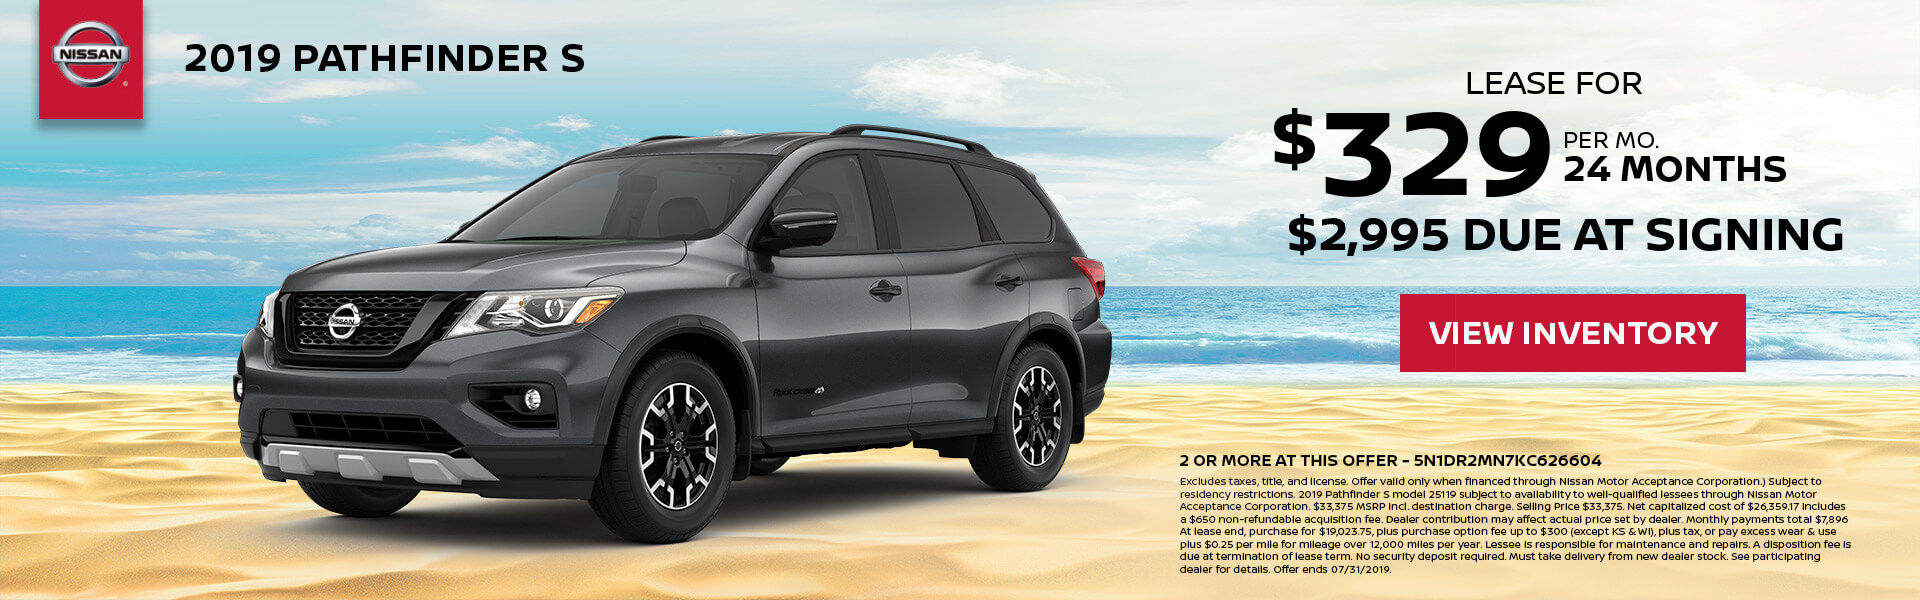 2019 Nissan Pathfinder Lease for $329